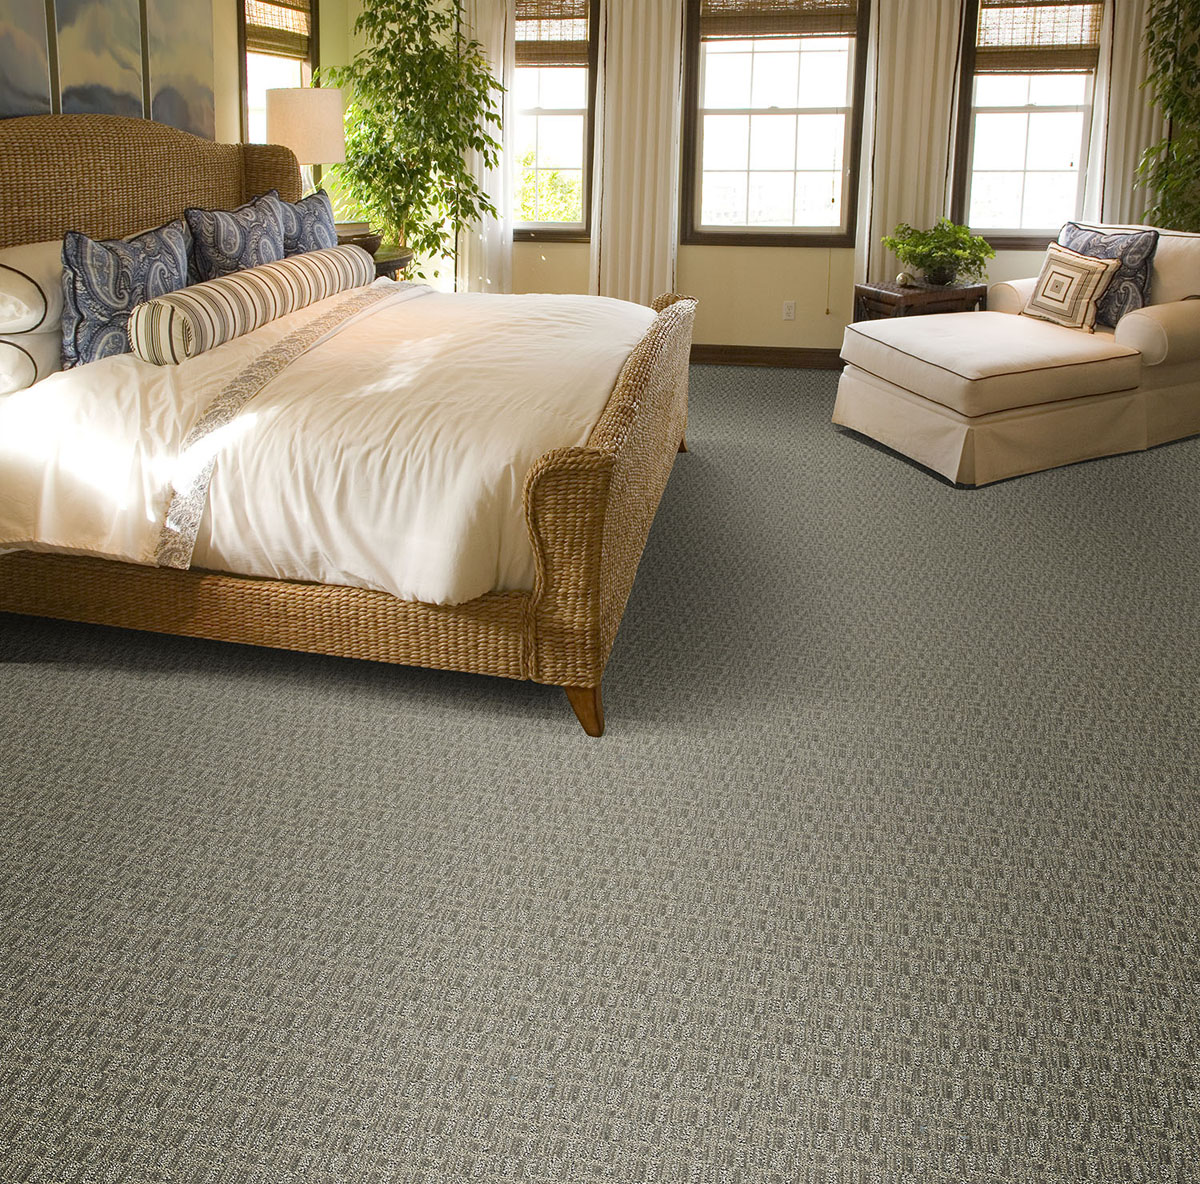 Networkflor Fabrica Fine Carpet Rugs